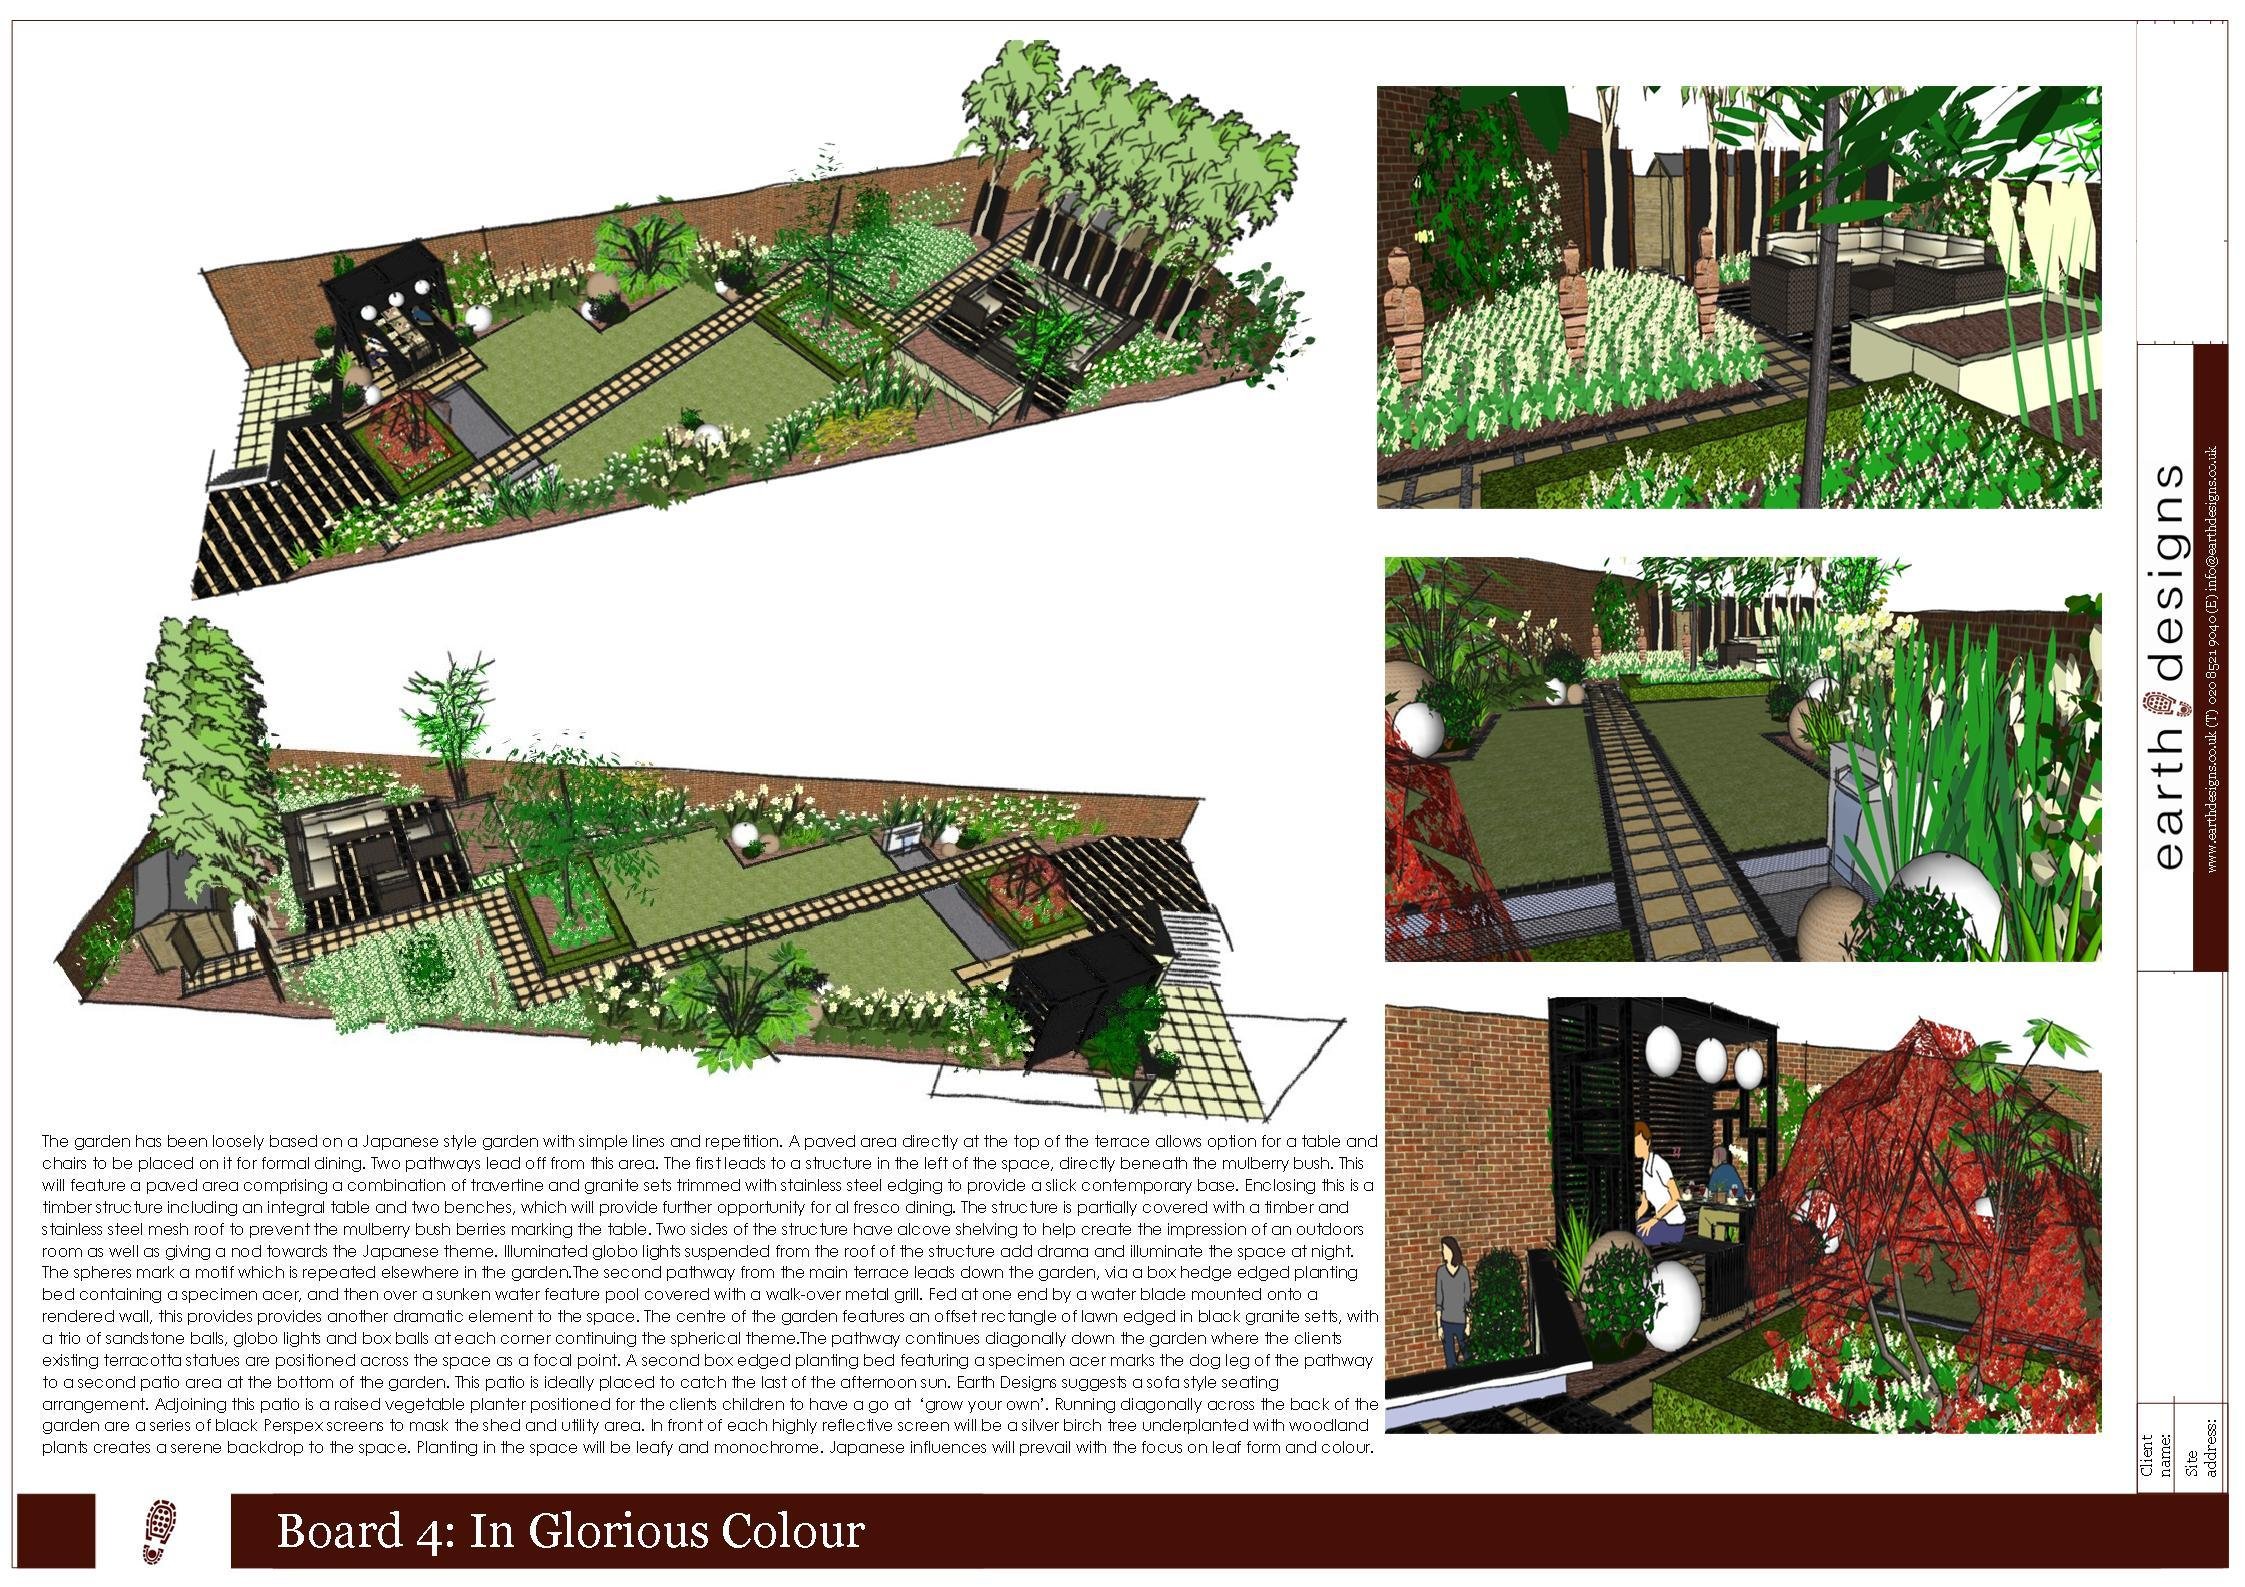 garden design essex garden design presentation 4 - Garden Design Essex